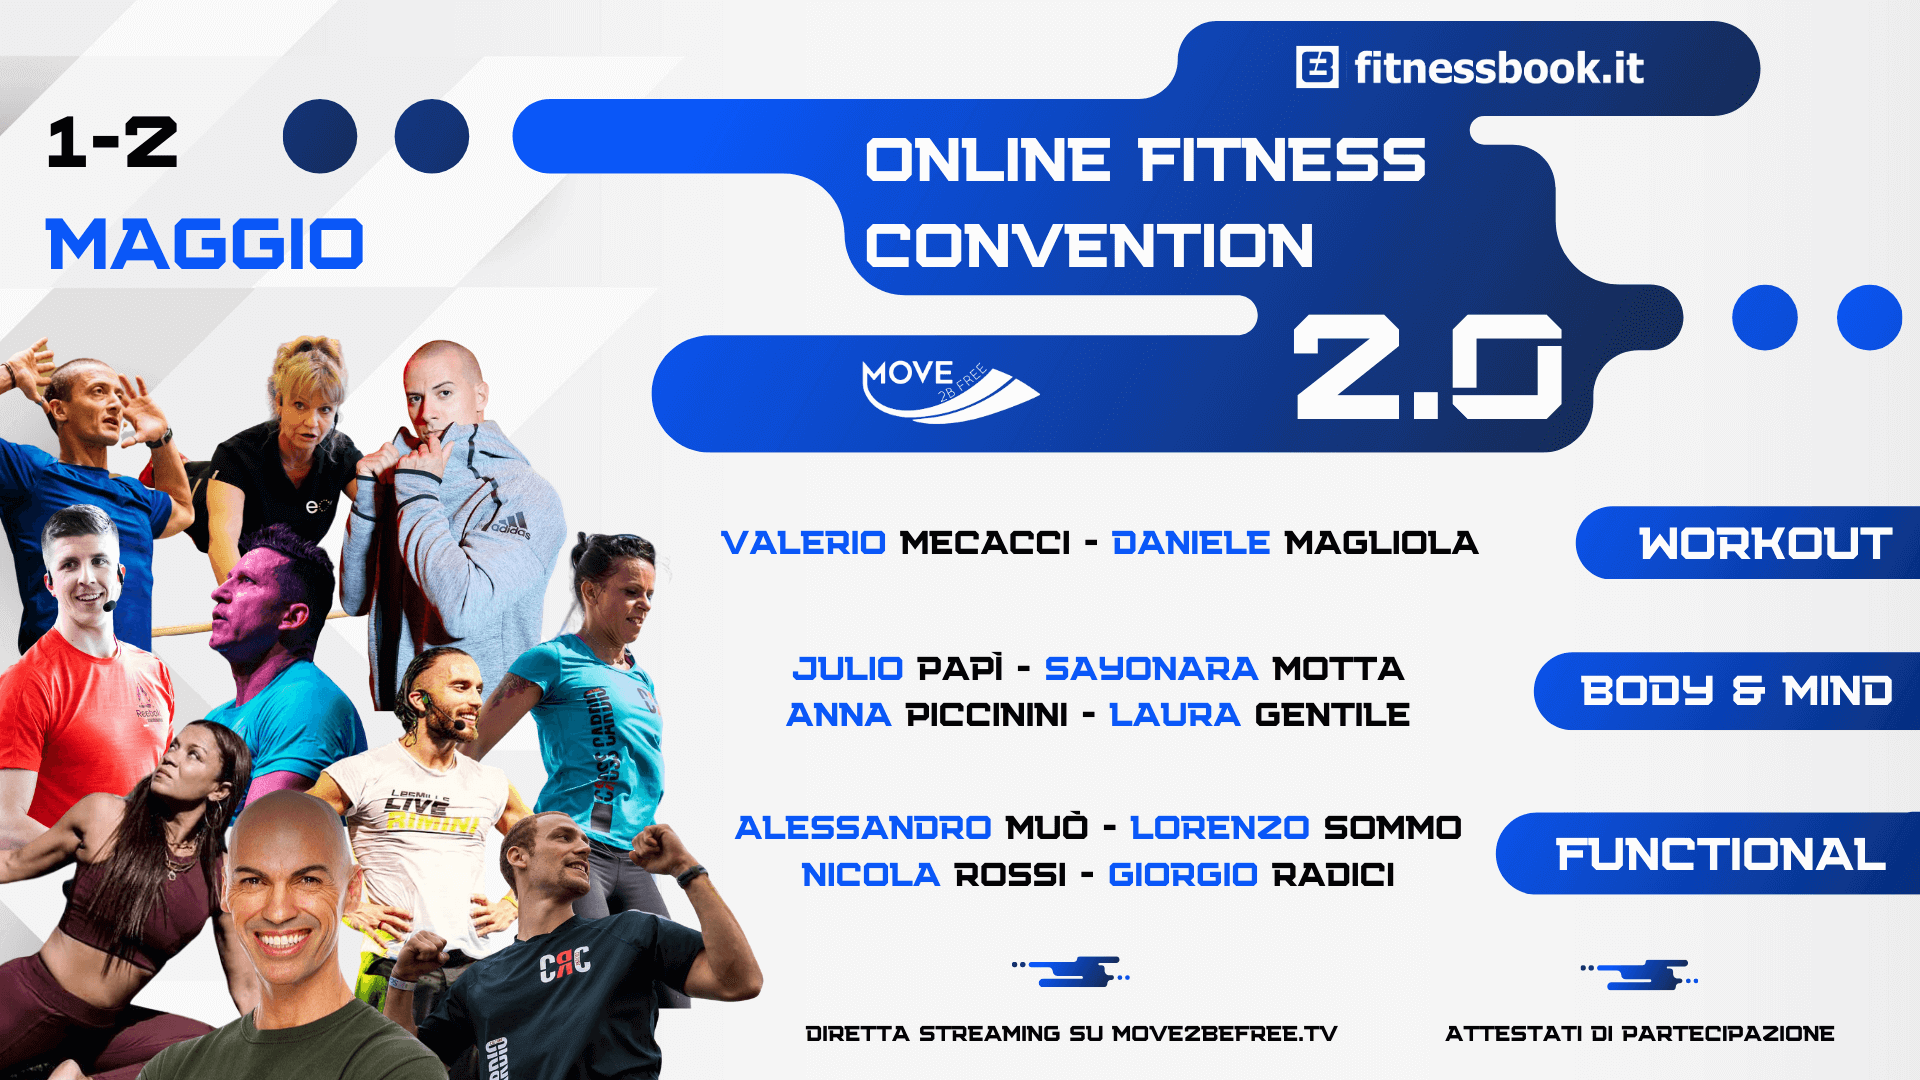 ONLINE FITNESS CONVENTION 2.0